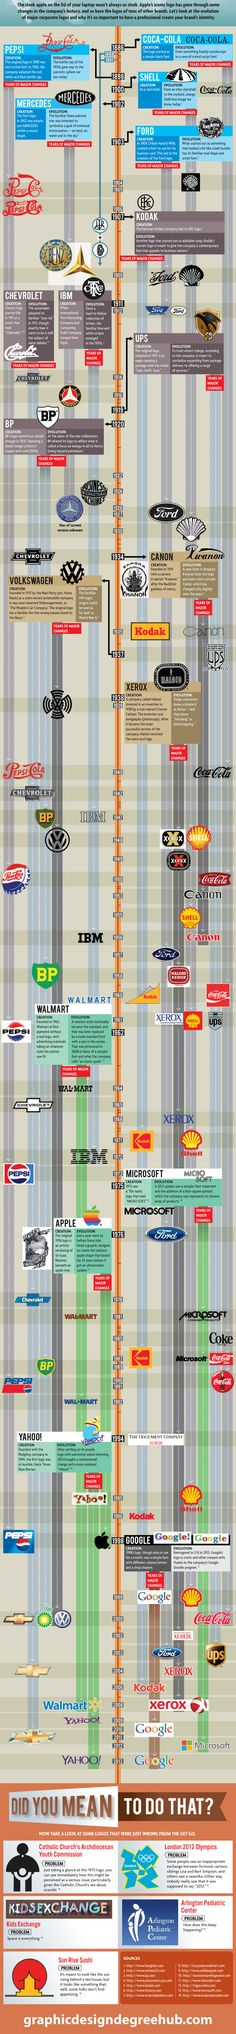 Infographic: The Evolution of 18 Major Brand Logos From 1886 to Today | Adweek #OsnLikesIt #ForInspiration #Infographic